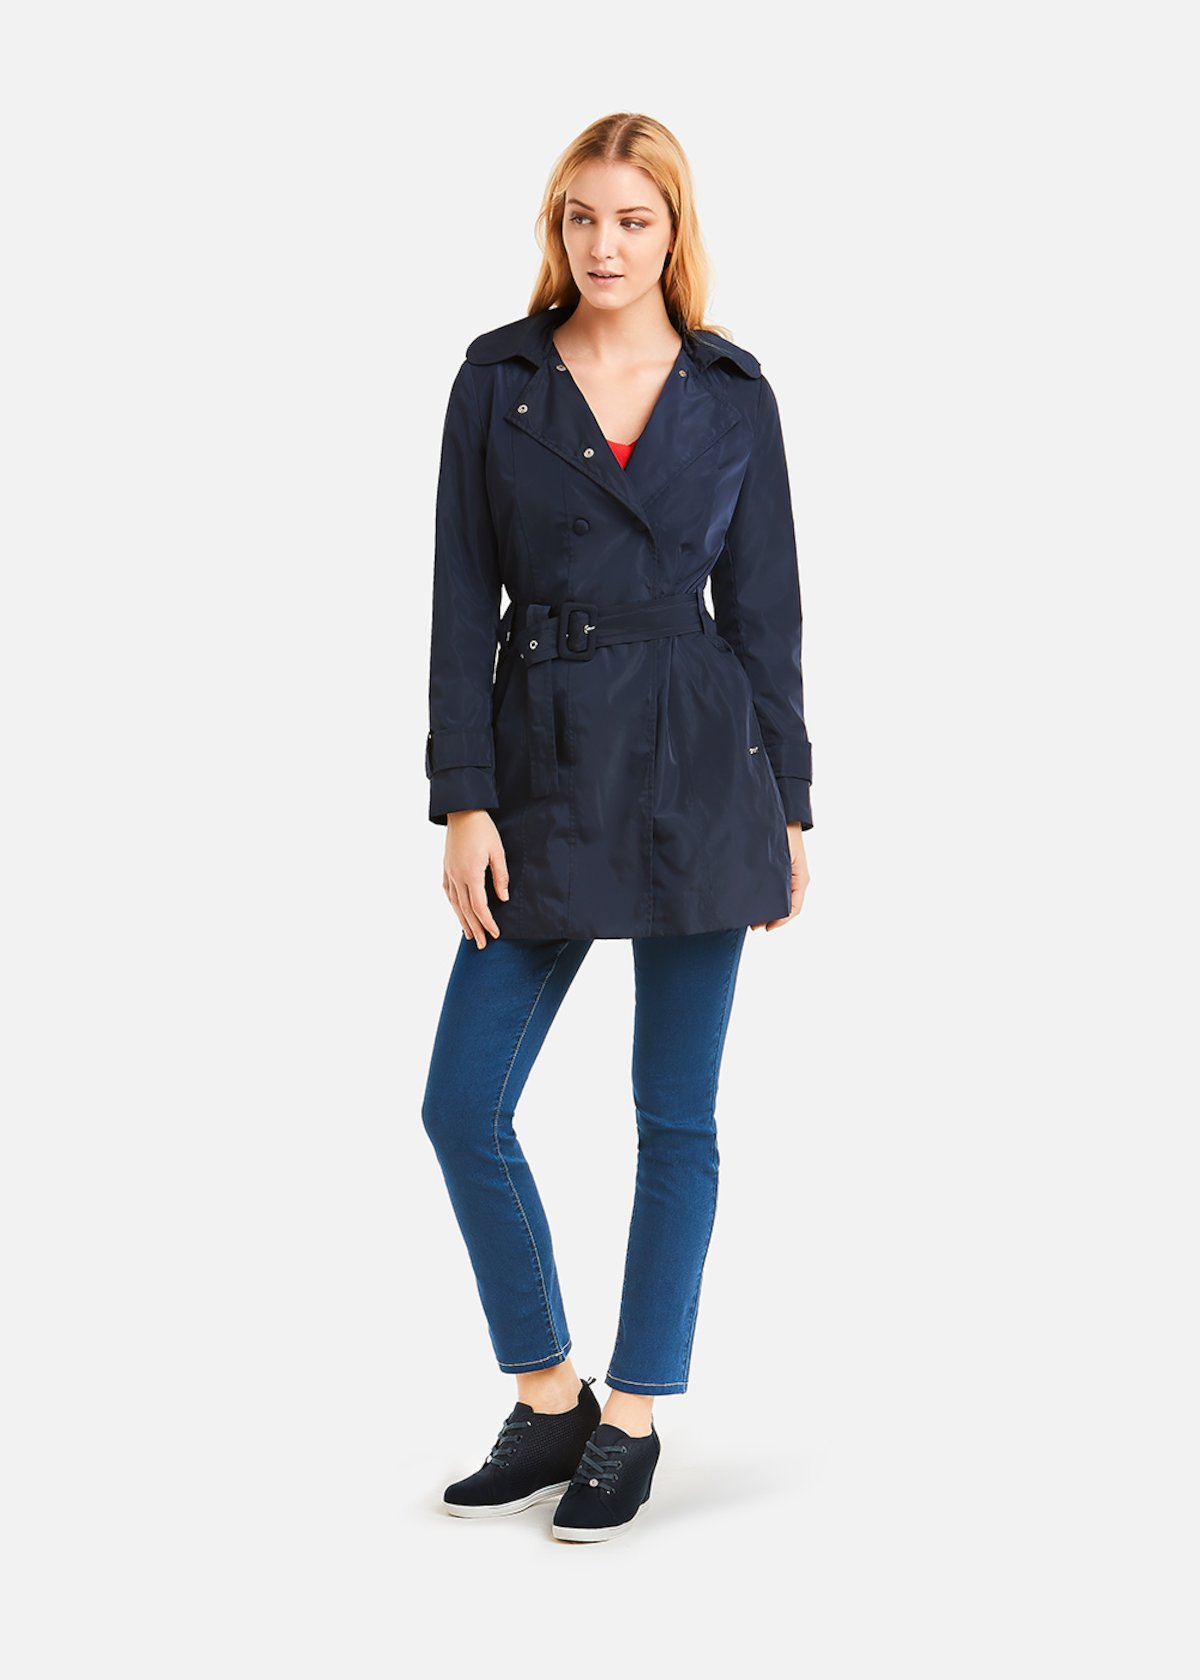 Tracy trench coat double breasted button closure